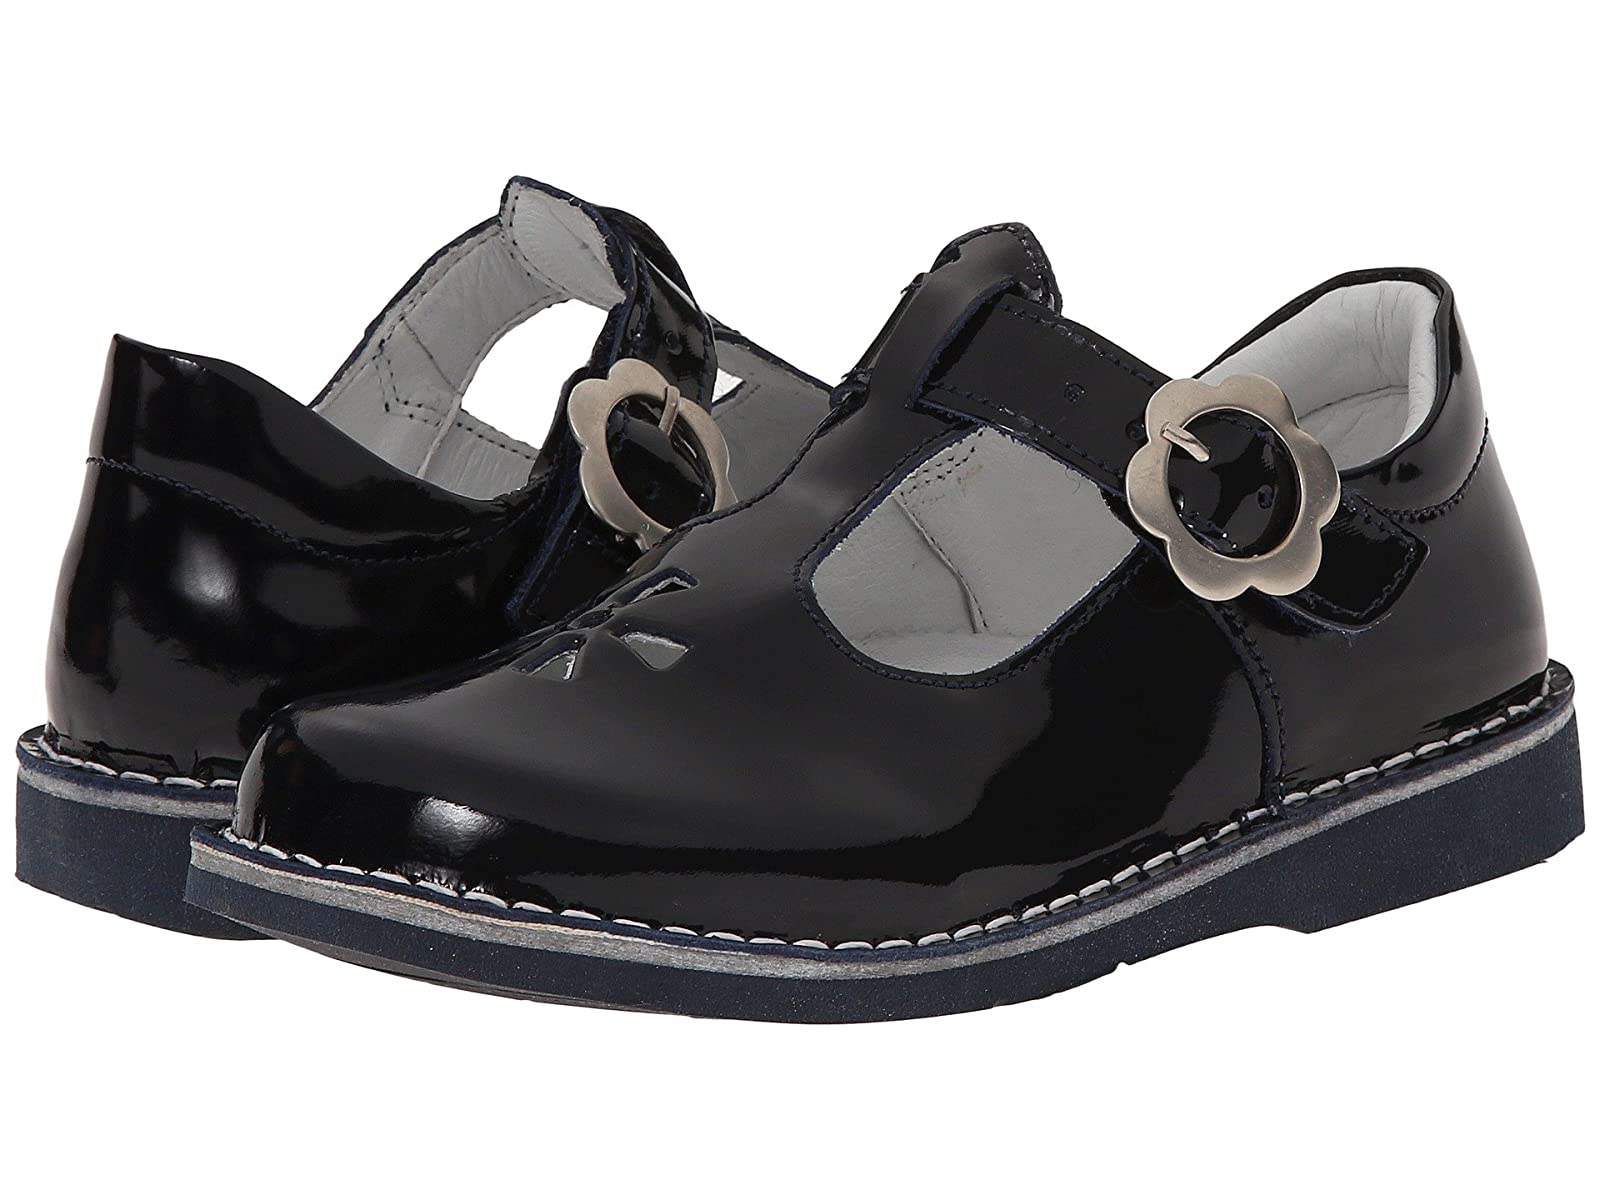 Kid Express Molly (Toddler/Little Kid/Big Kid)Atmospheric grades have affordable shoes